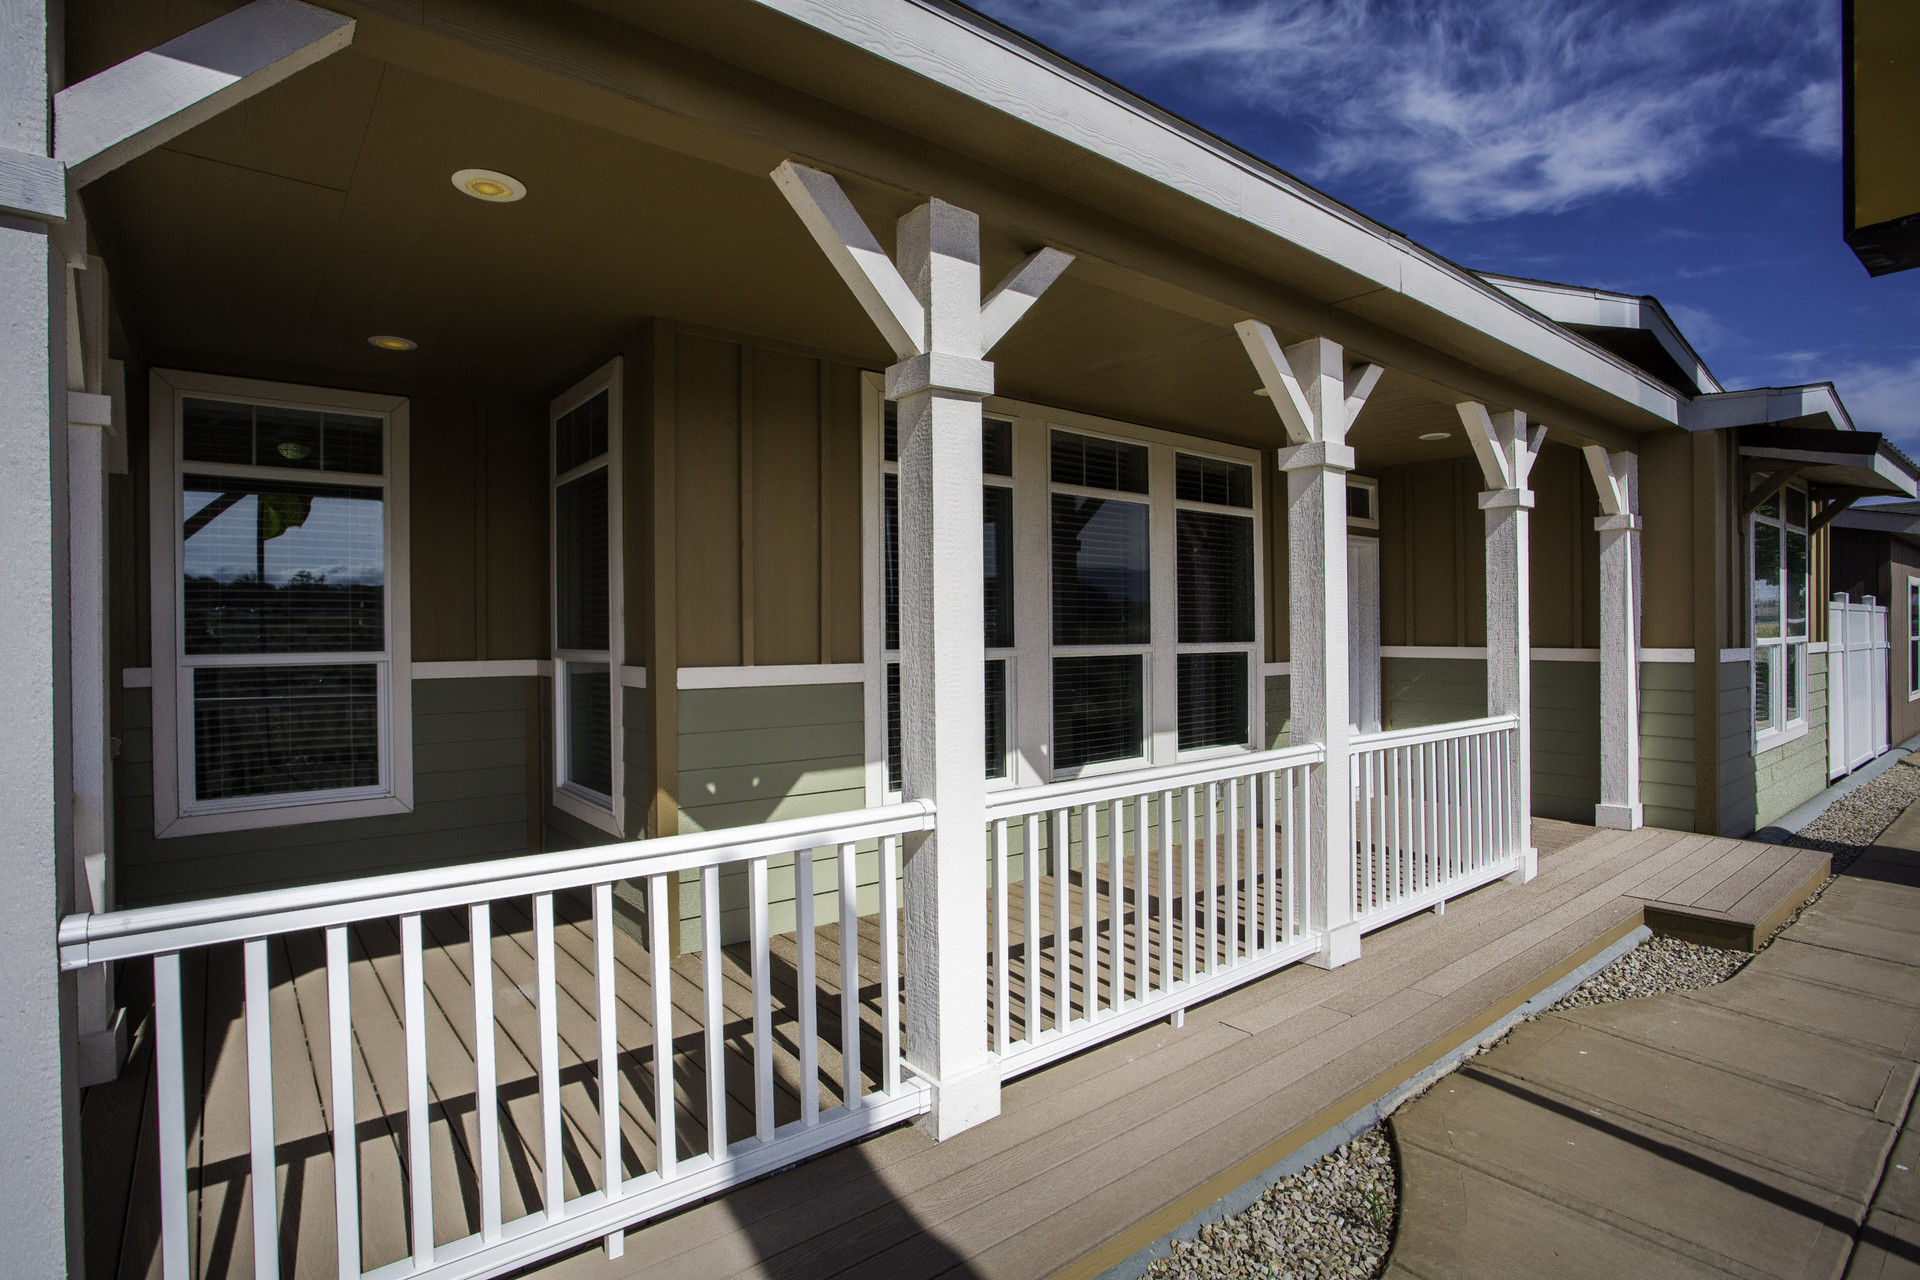 Modular Homes Virginia >> Karsten (Albuquerque) 3 Bedroom Manufactured Home RC4068A for $145900 | Model RC4068A from Homes ...